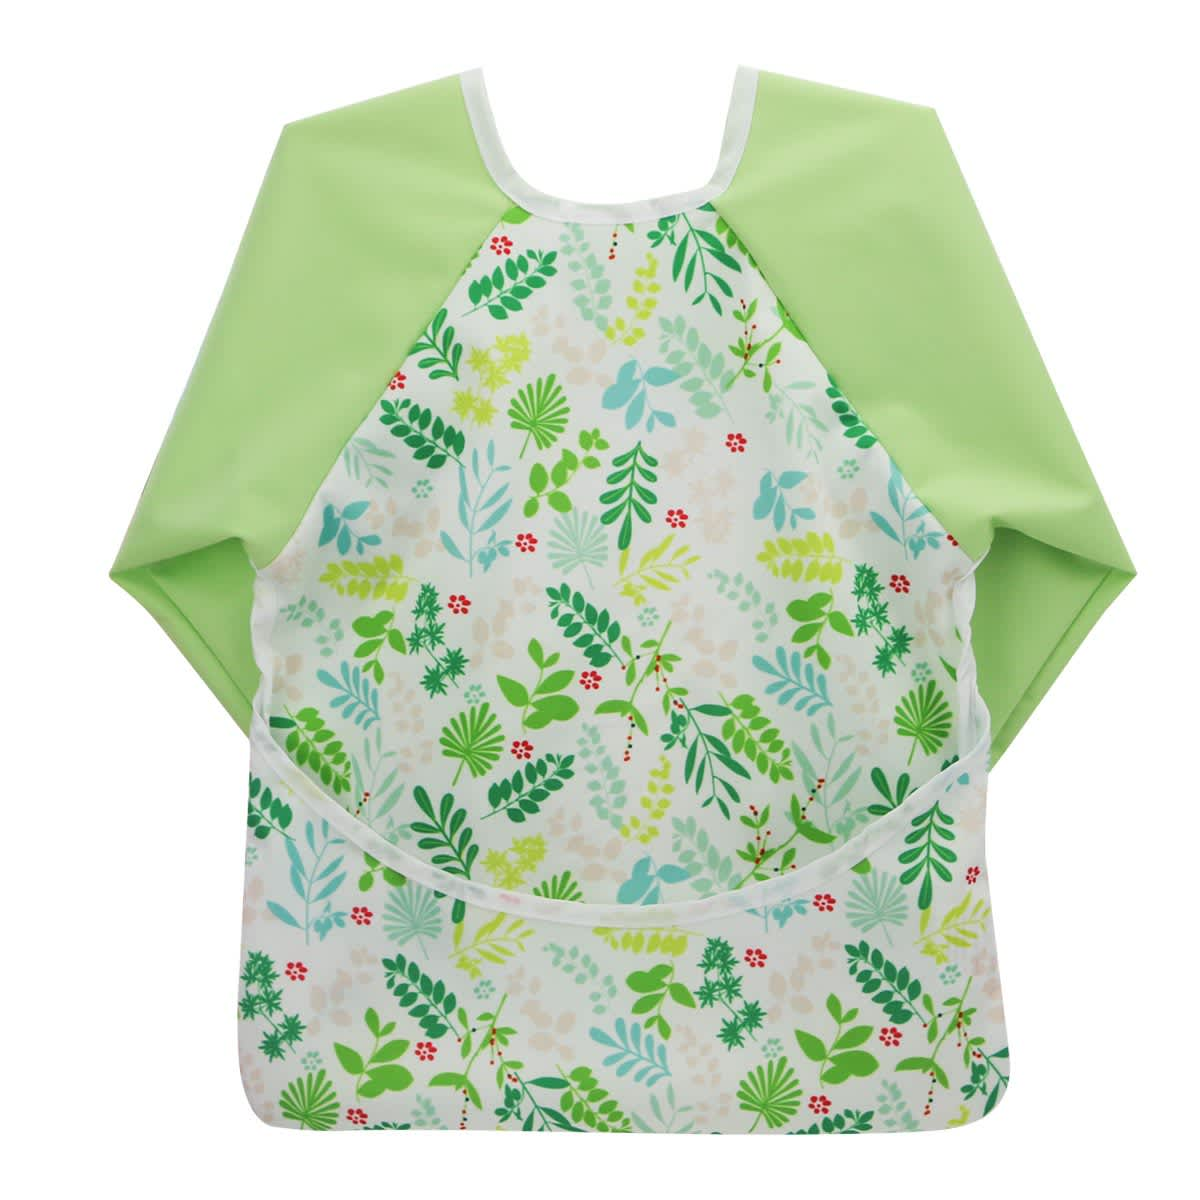 The Best Baby Bibs, According to Moms of Super-Messy Kids: gallery image 2